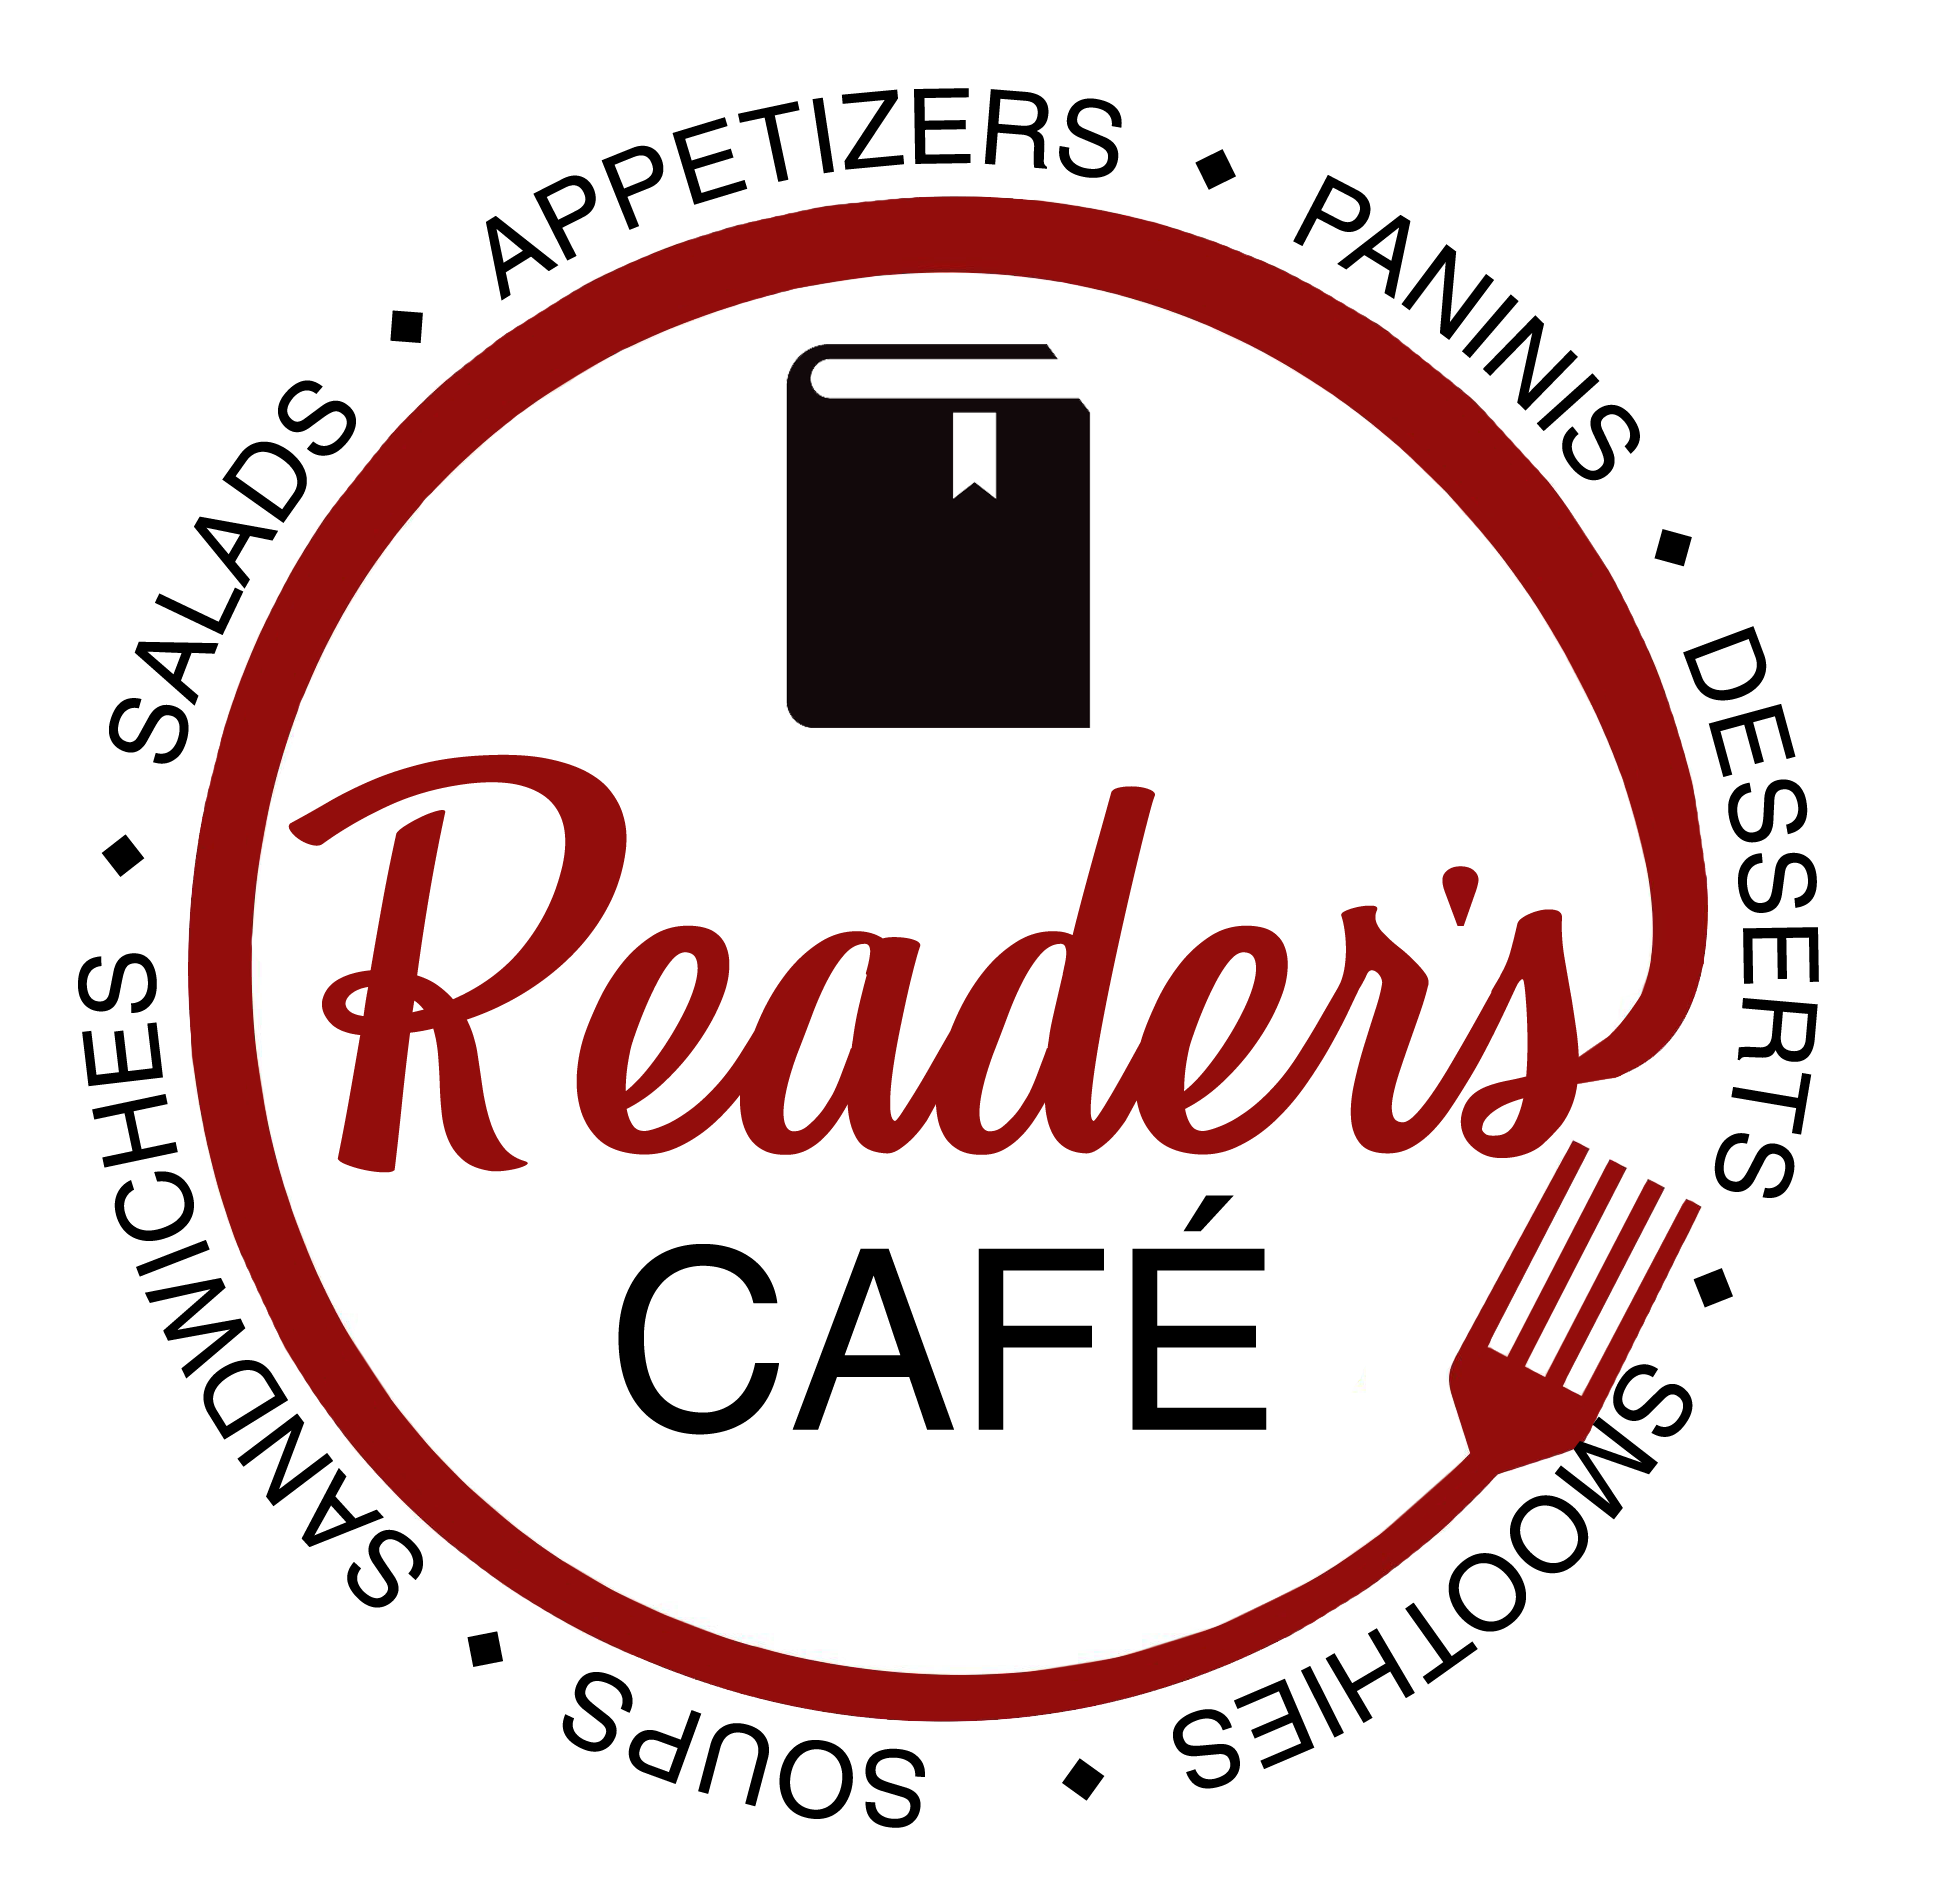 The Reader's Cafe Logo